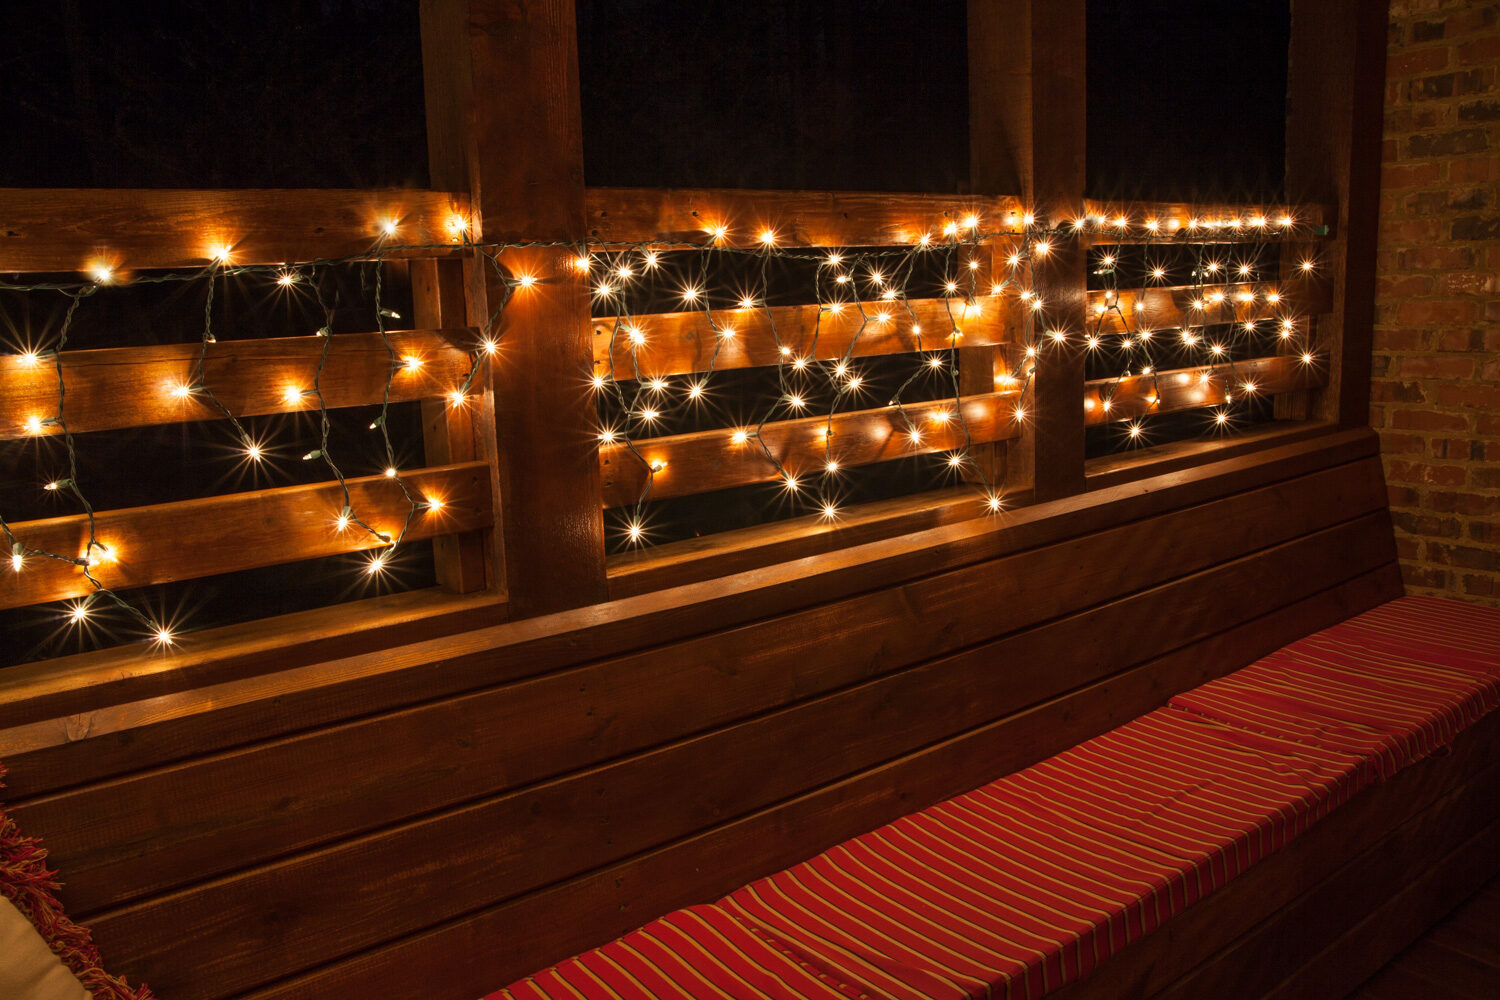 create beautiful outdoor lighting by hanging white string lights from decks and patios - Deck Lighting Ideas